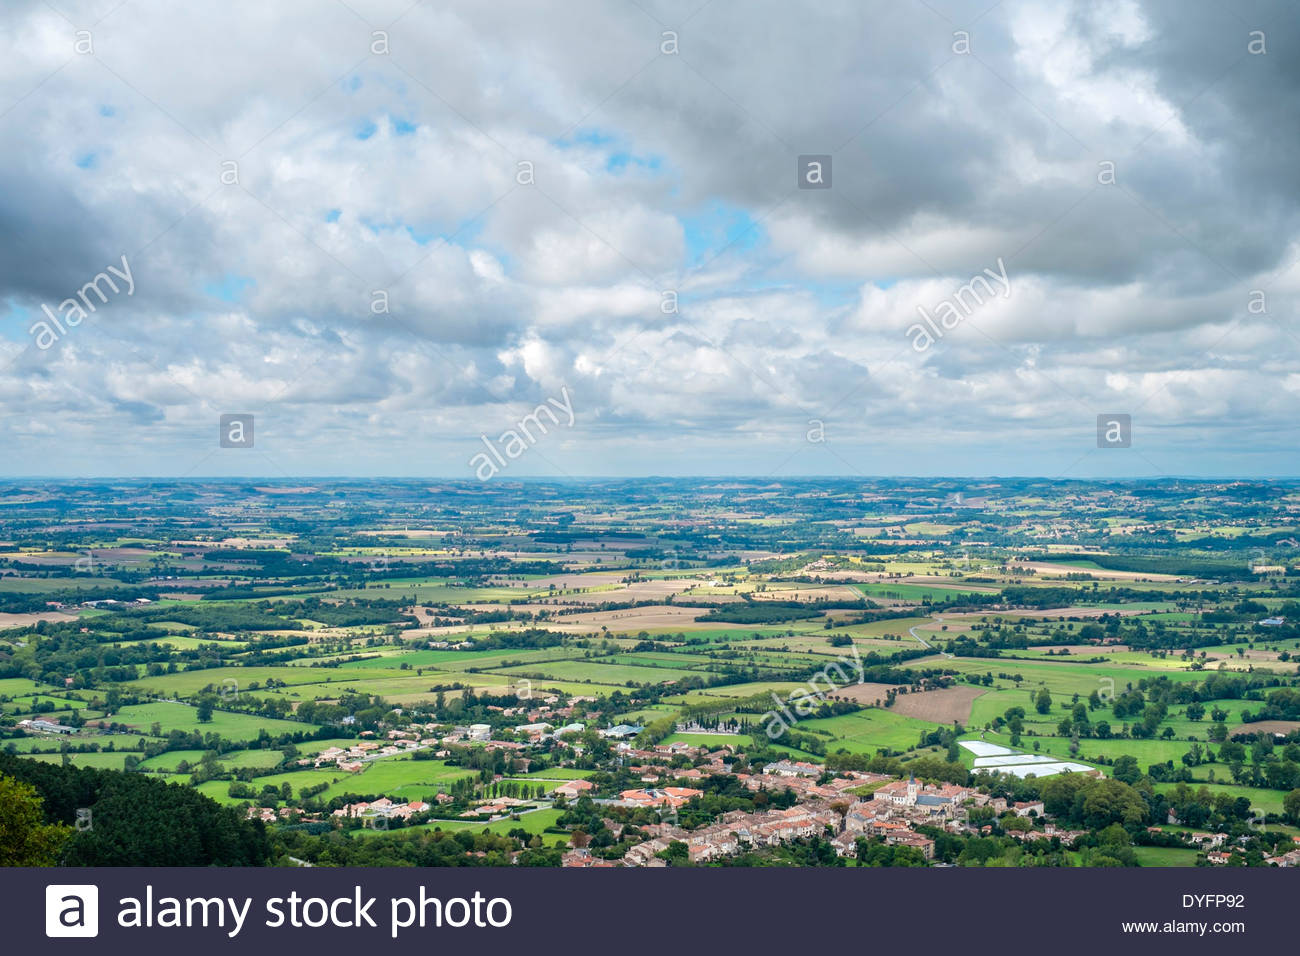 View overlooking farmland in valley, near Dourgne (lower right), Tarn Department, Midi-Pyrénées, France - Stock Image